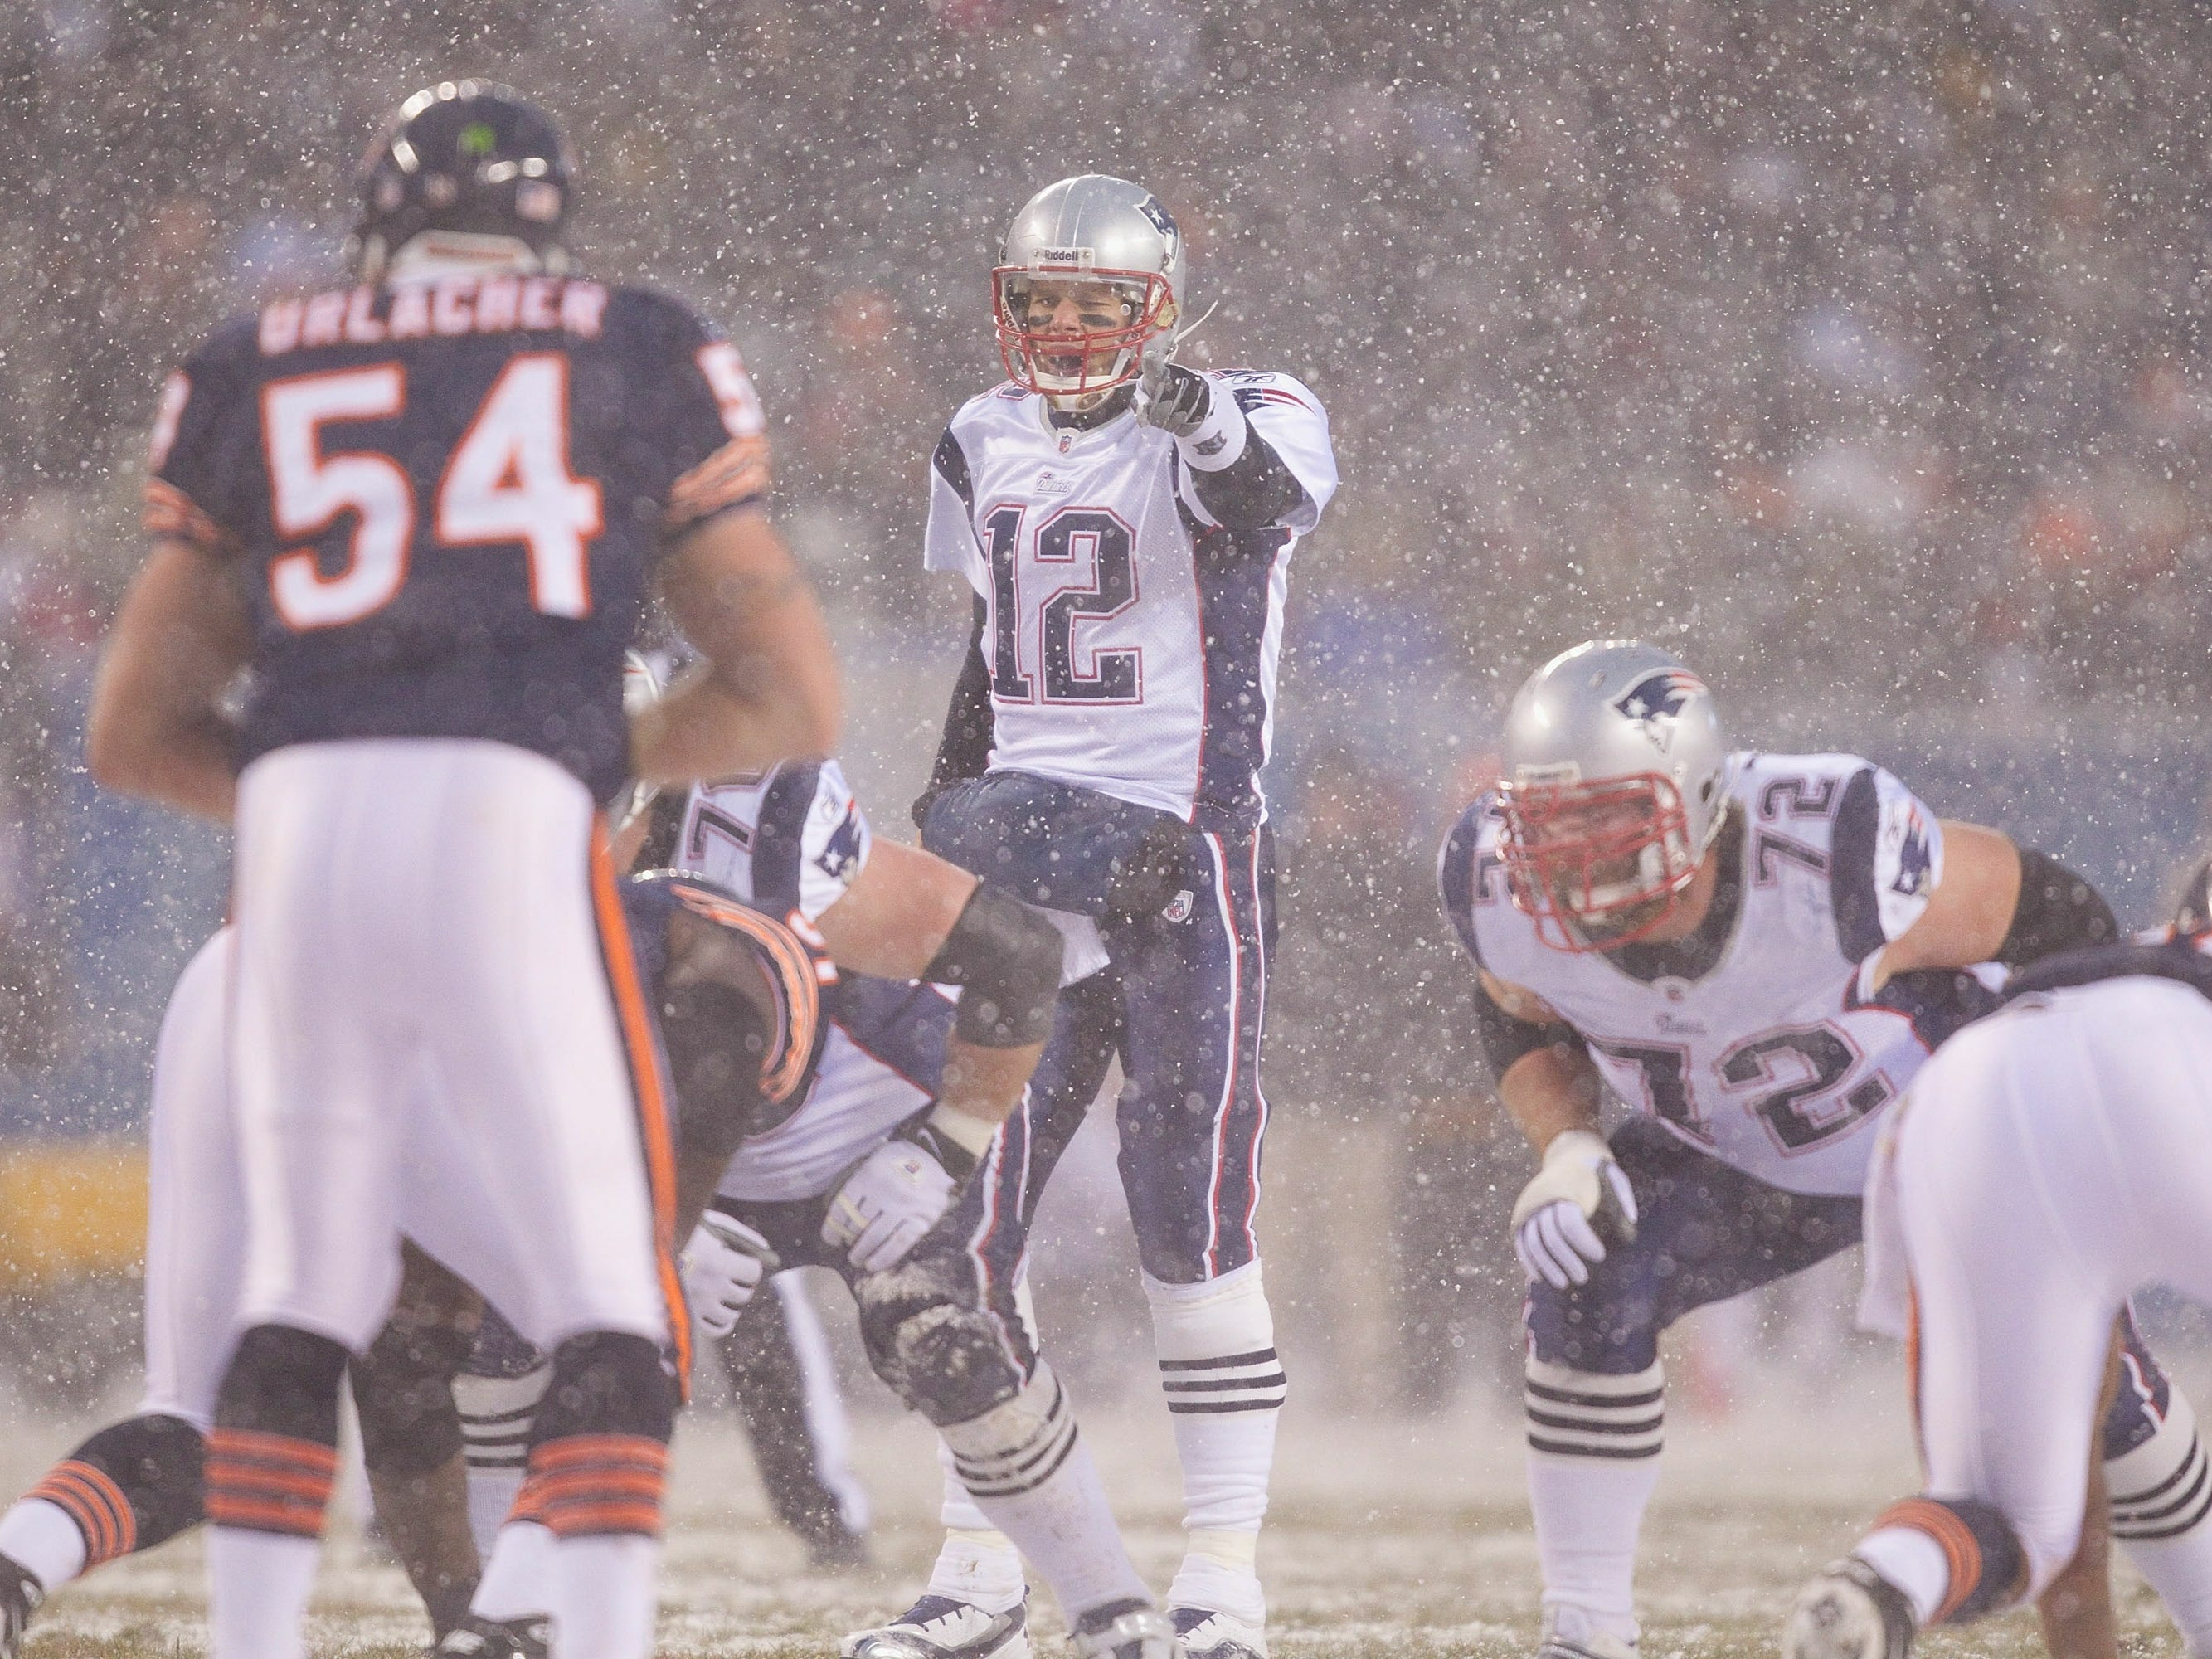 Dec. 12, 2010: New England Patriots quarterback Tom Brady directs the offense against the Chicago Bears at Soldier Field. The Patriots won the game, 36-7.